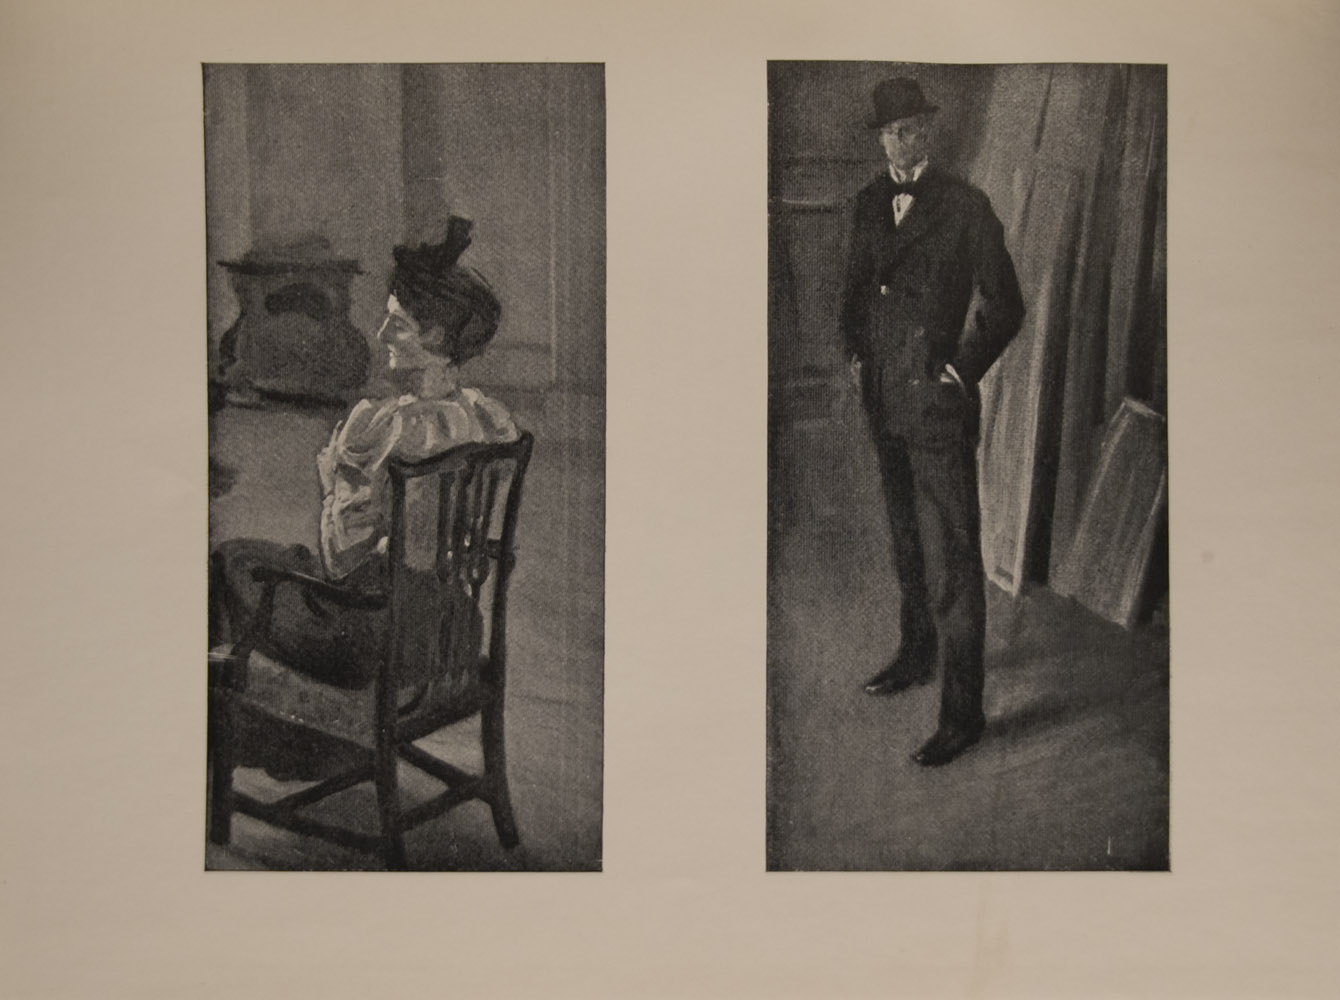 he image is of a mature woman seated in a chair her back to the viewer but with head in profile She wears a hat a white blouse and a dark skirt The scene is in an interior room there is a stove in the background The image is displayed horizontally